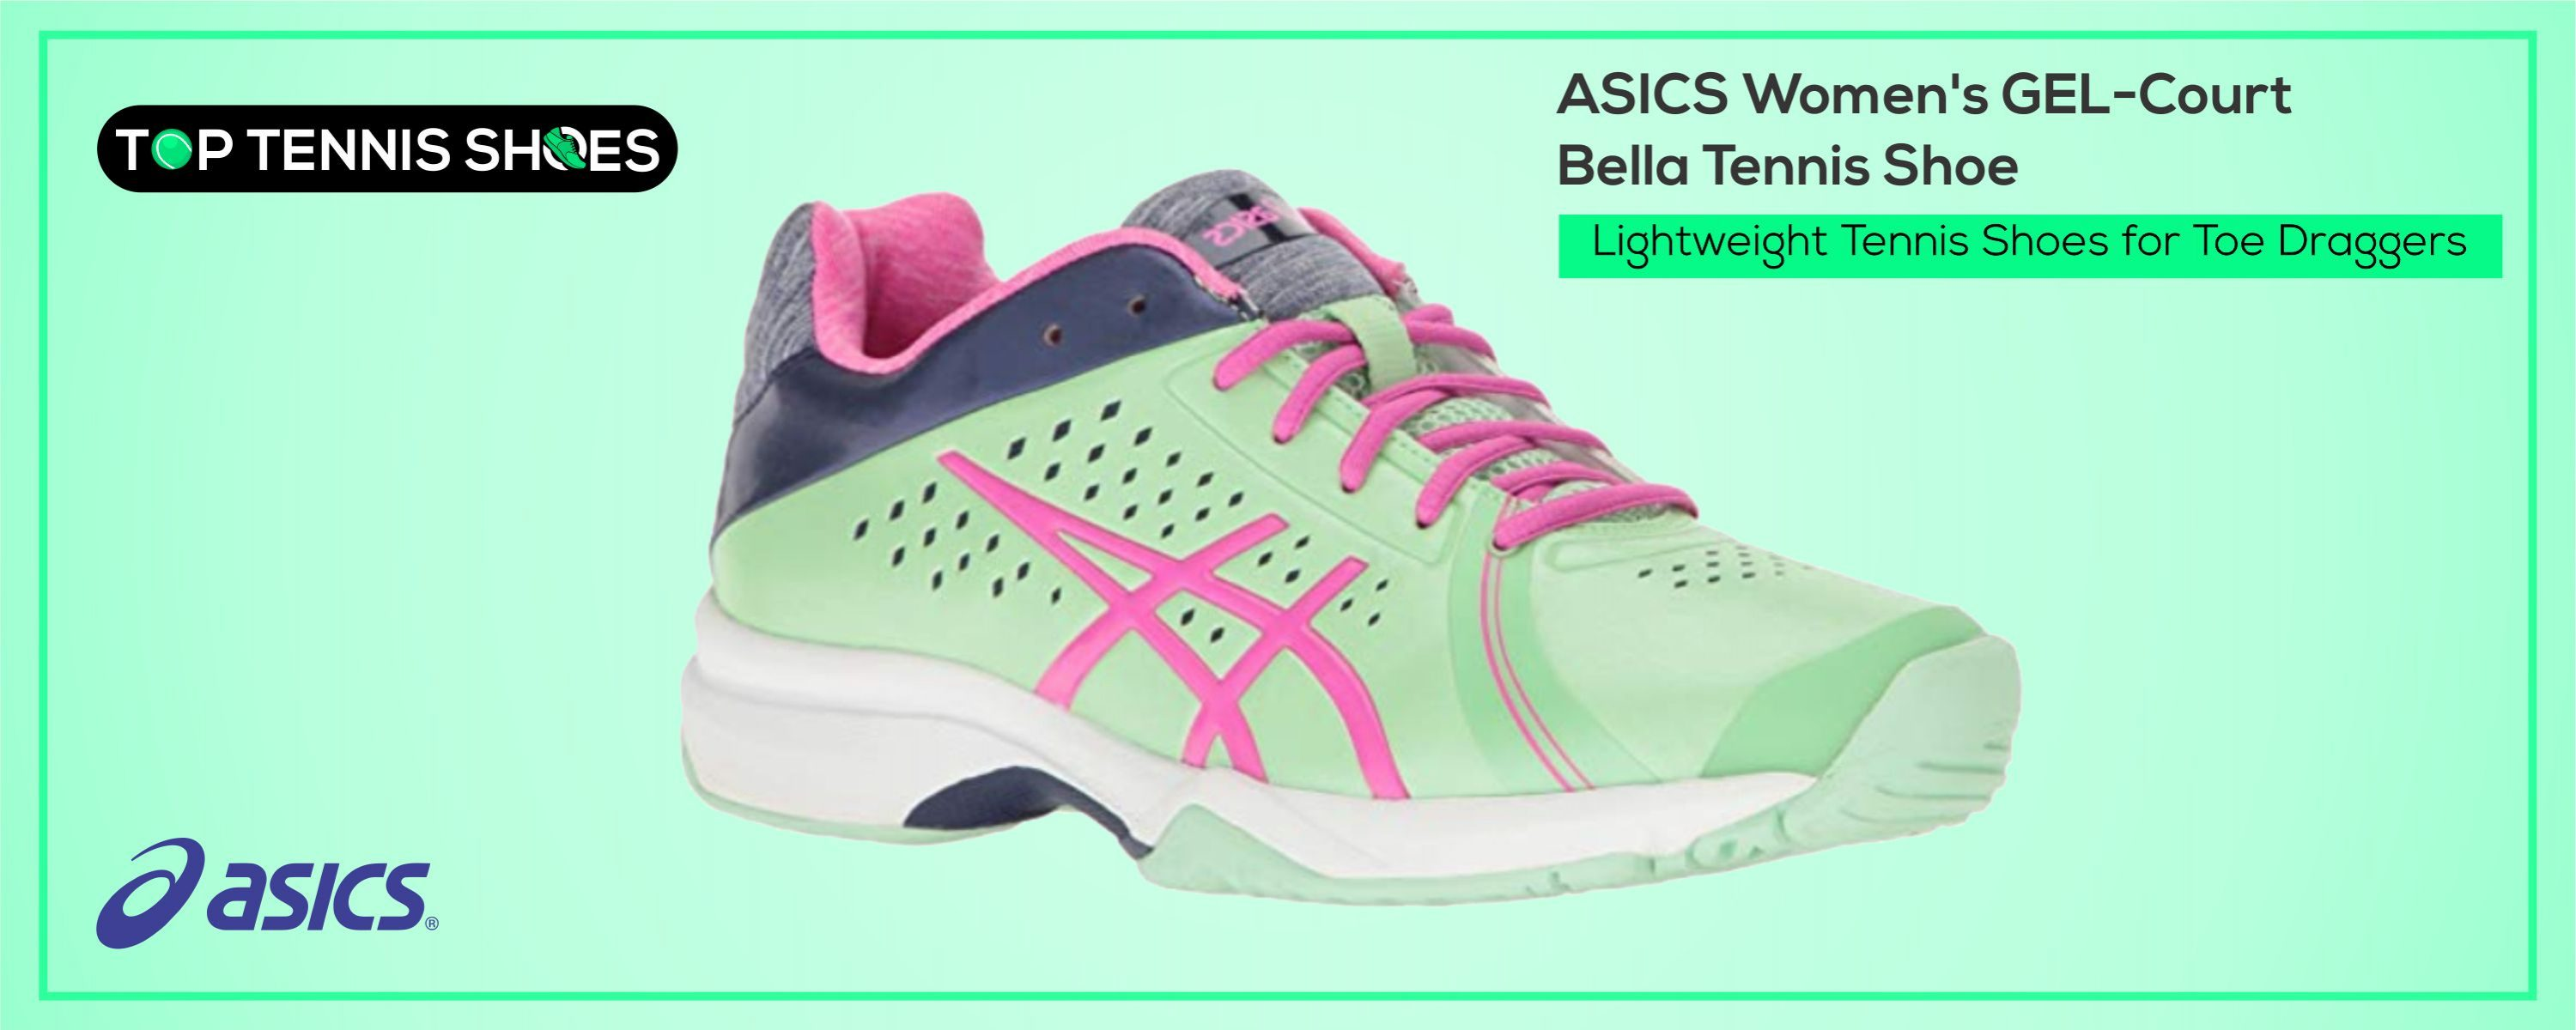 Lightweight Tennis Shoes for Toe Draggers